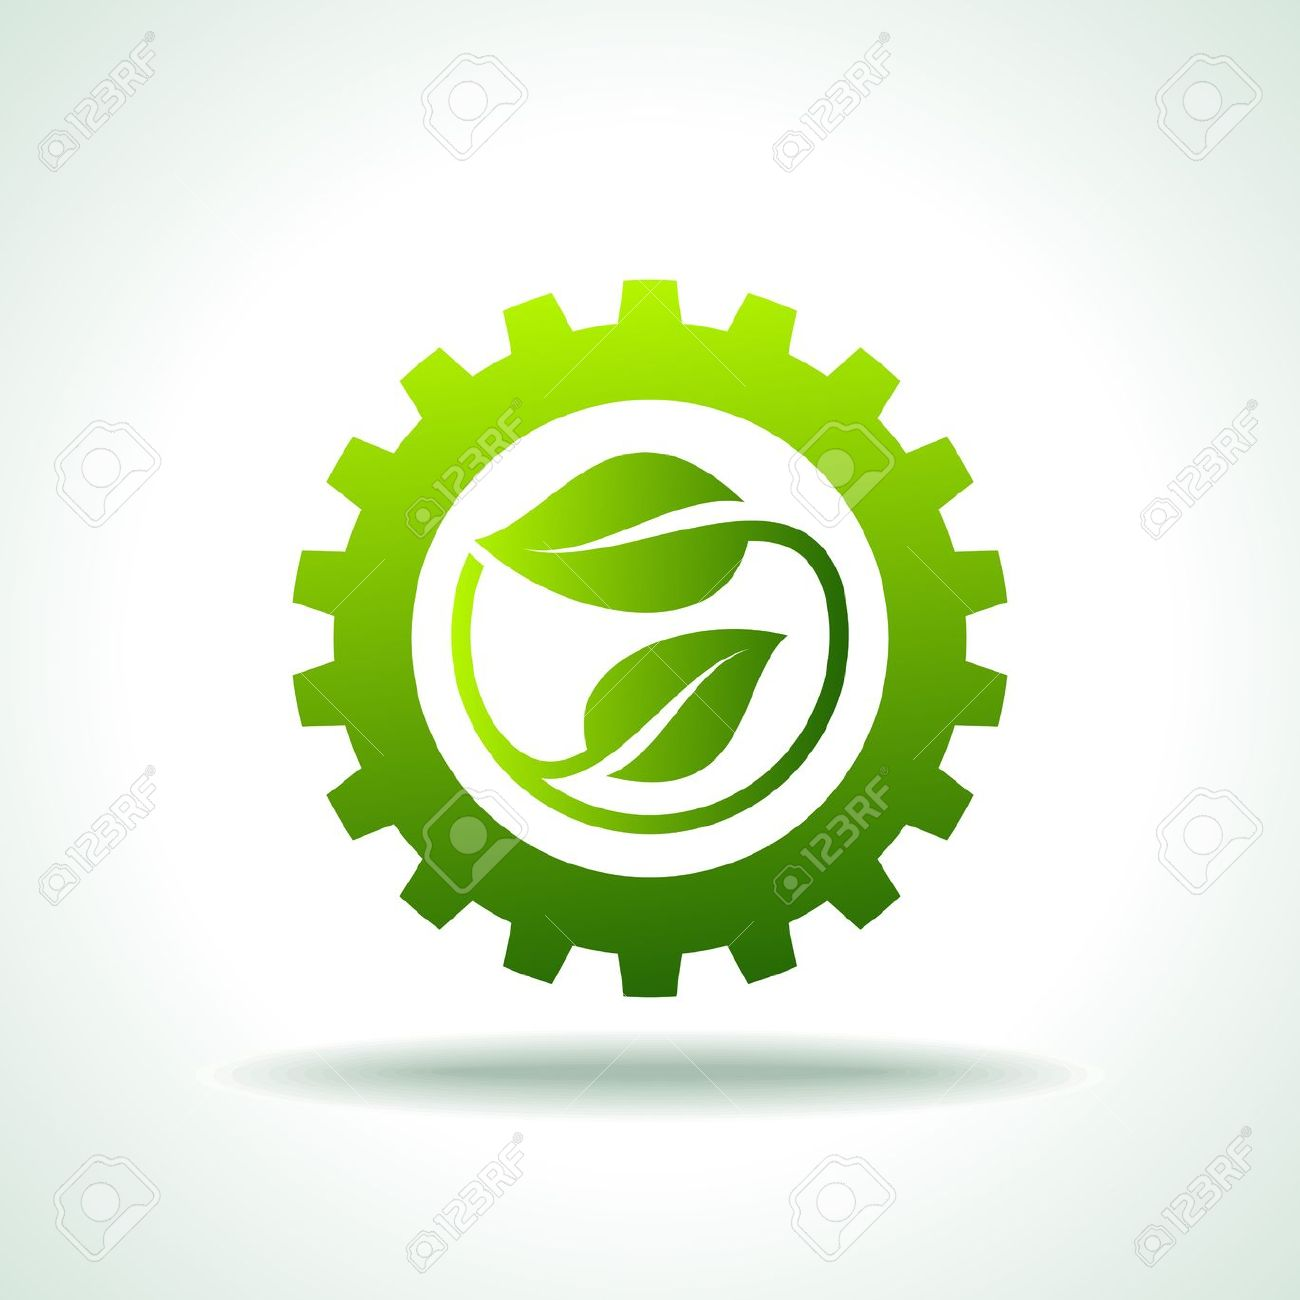 Environmentally Friendly Industries Royalty Free Cliparts, Vectors.